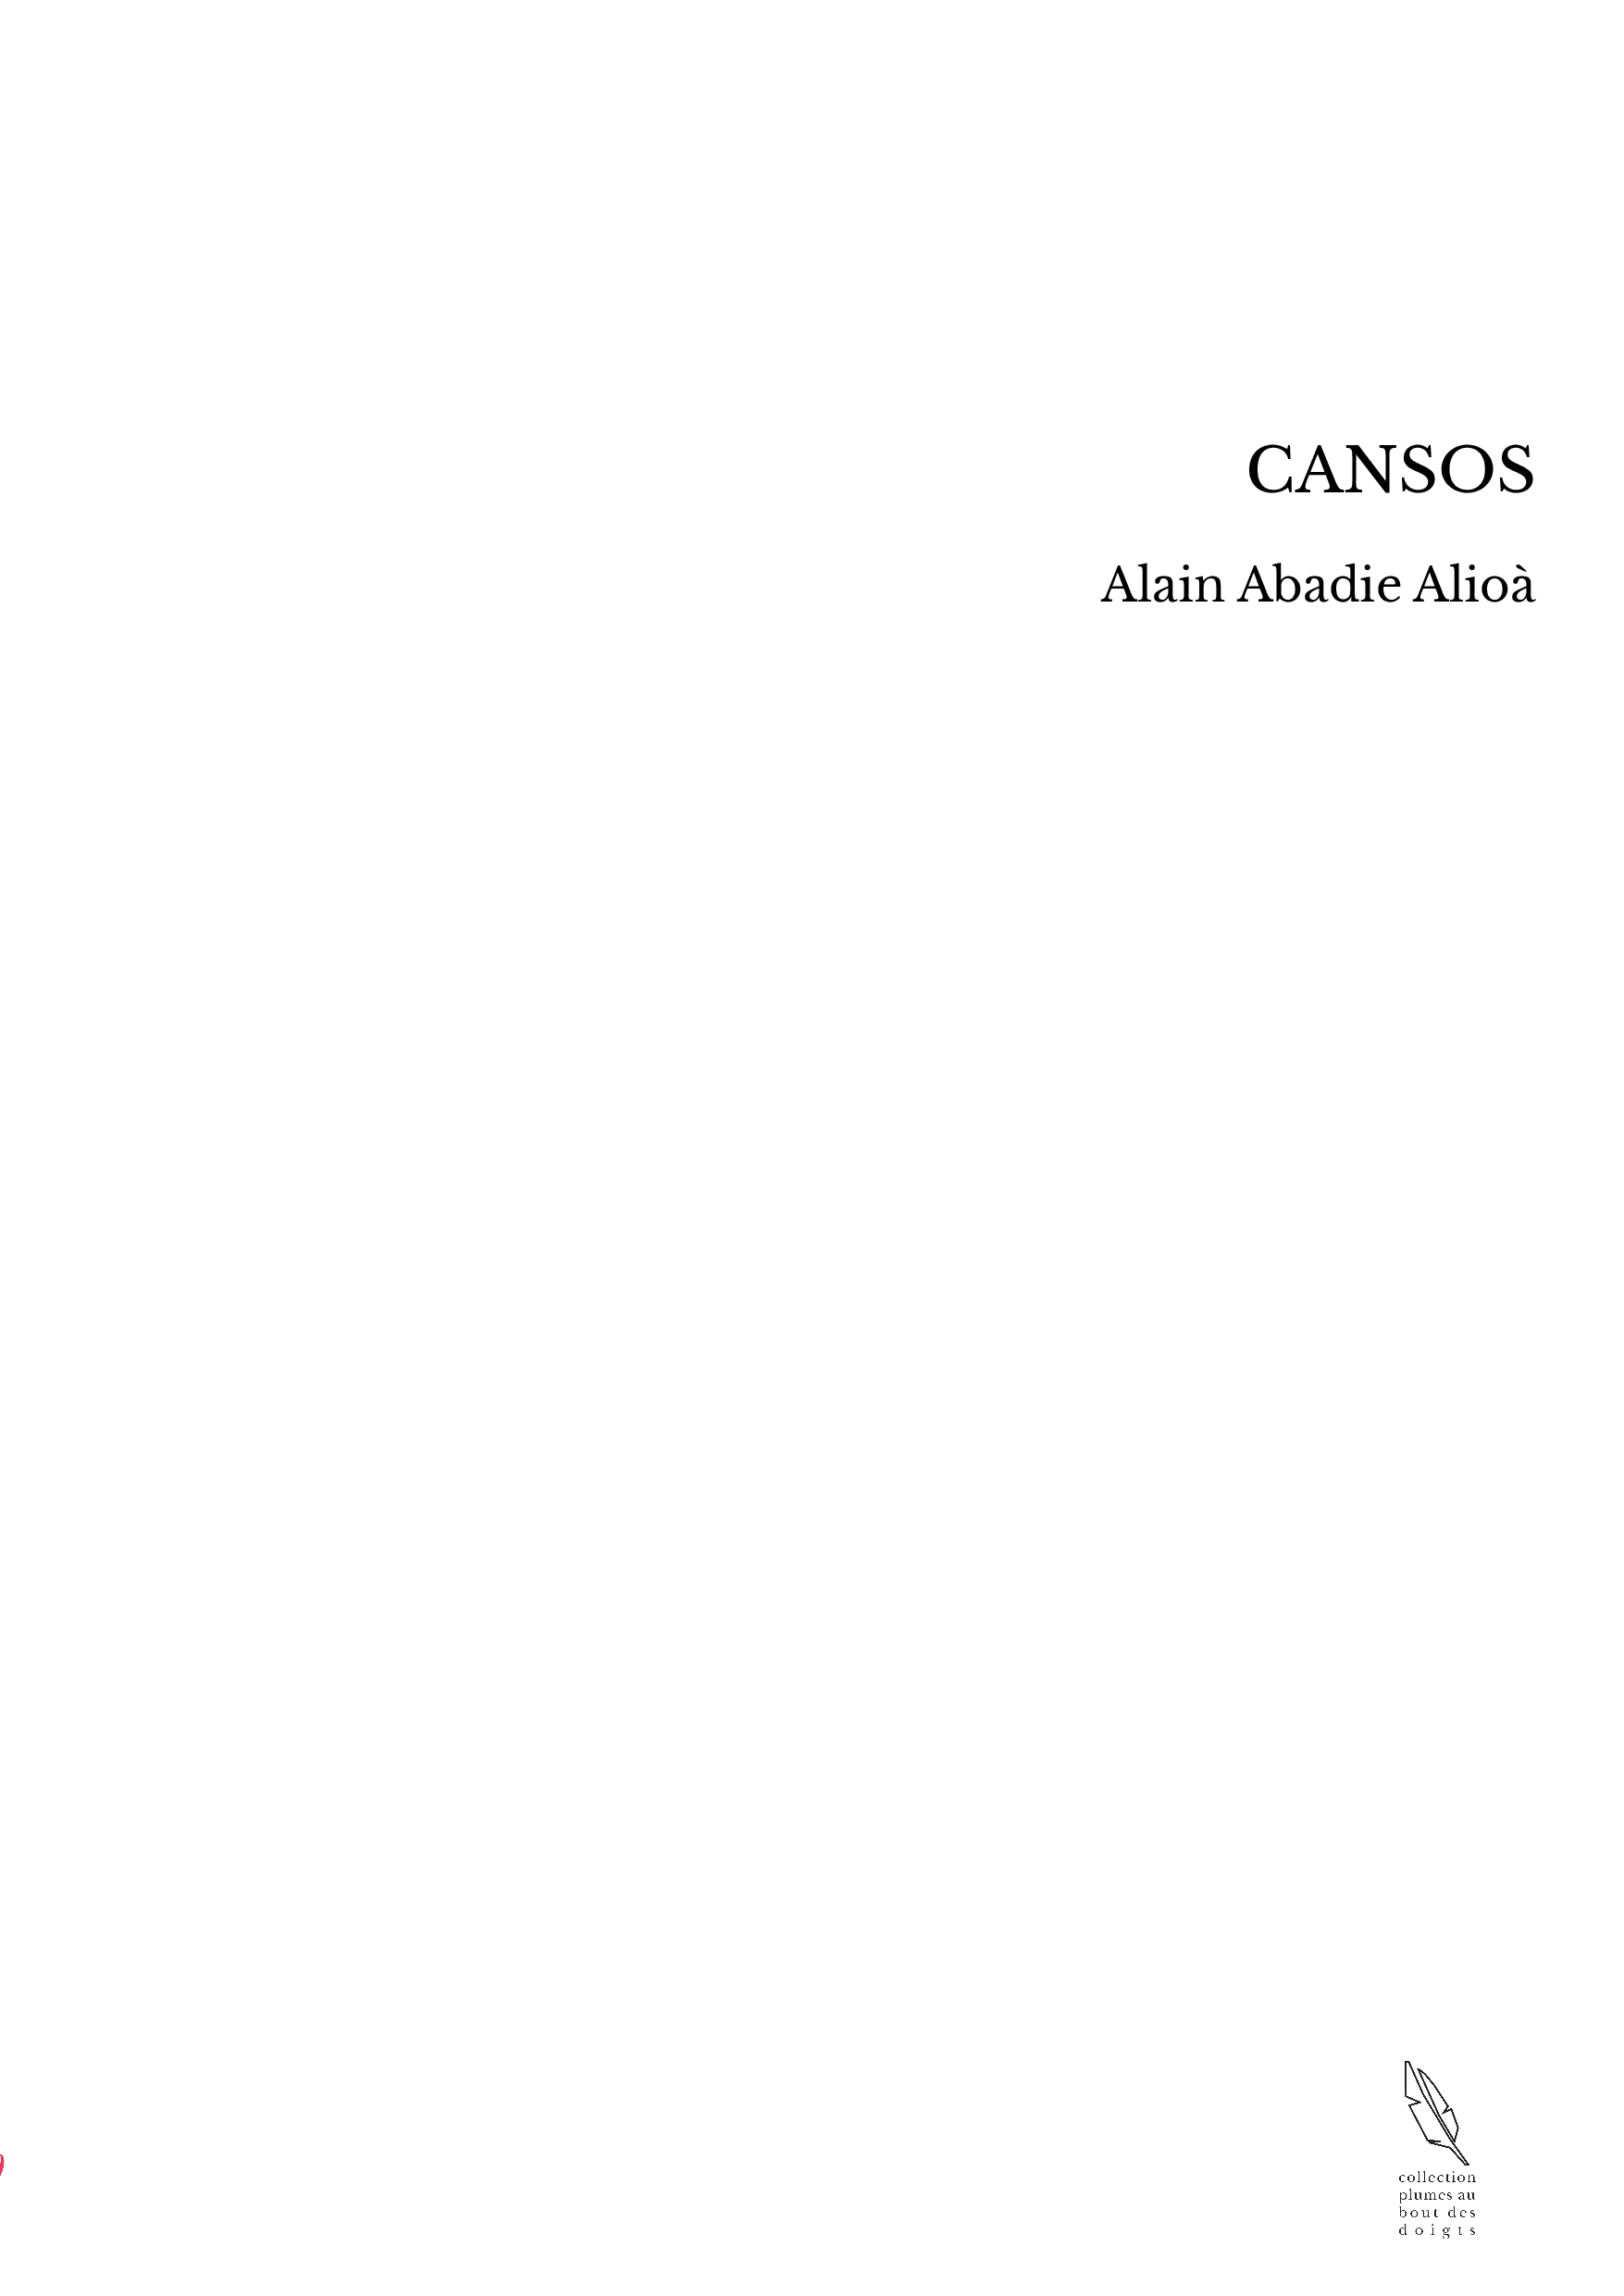 CANSOS